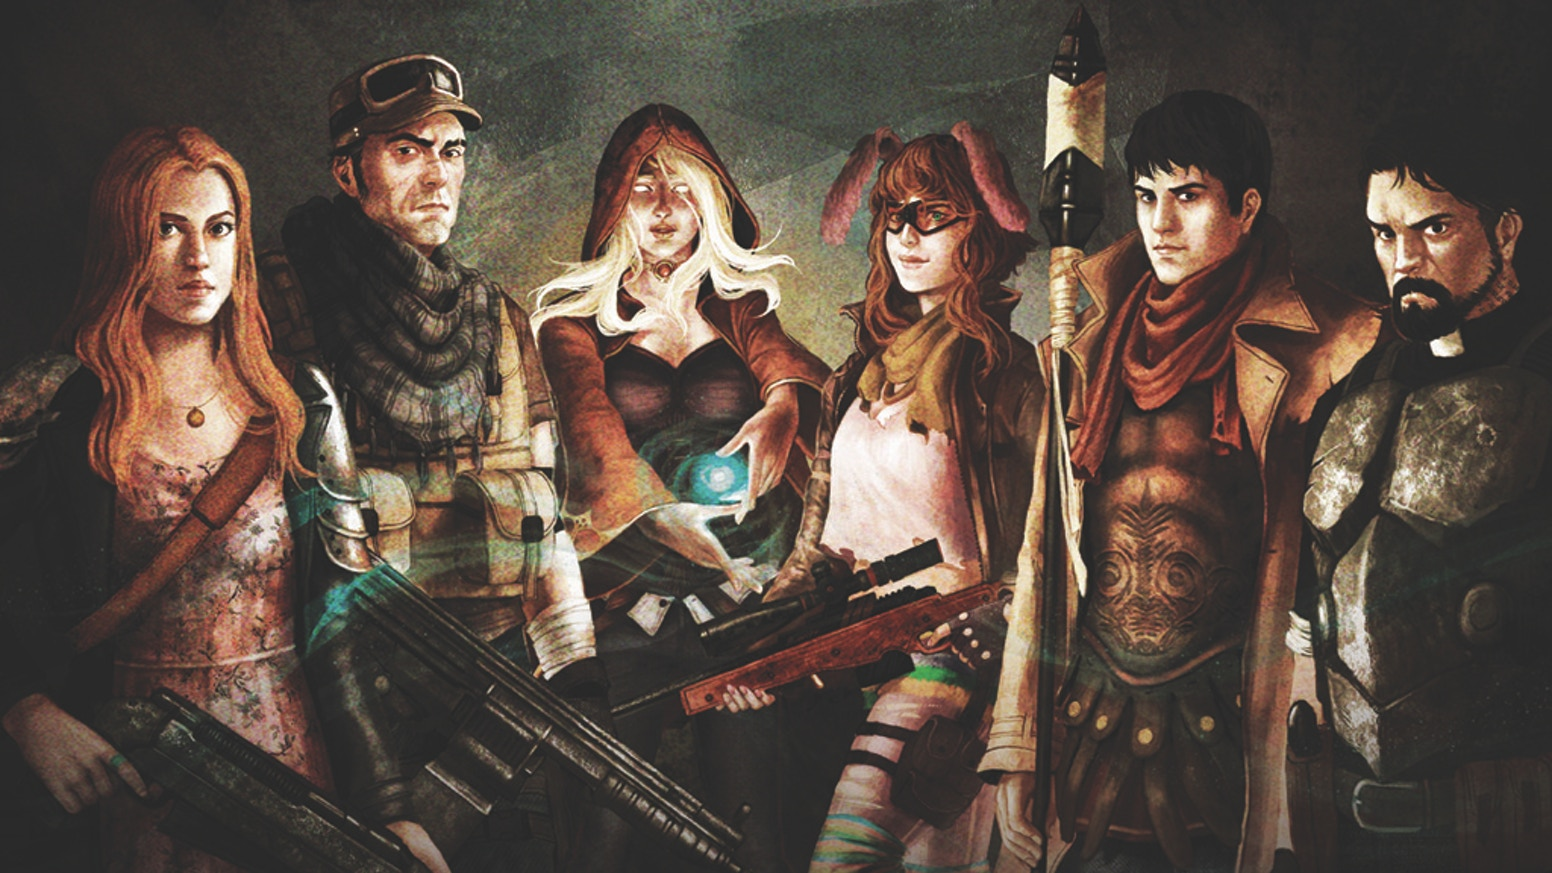 An emergent Strategic and Tactical Turn-based supernatural post-apocalyptic RPG inspired by Fallout, X-Com and Jagged Alliance.